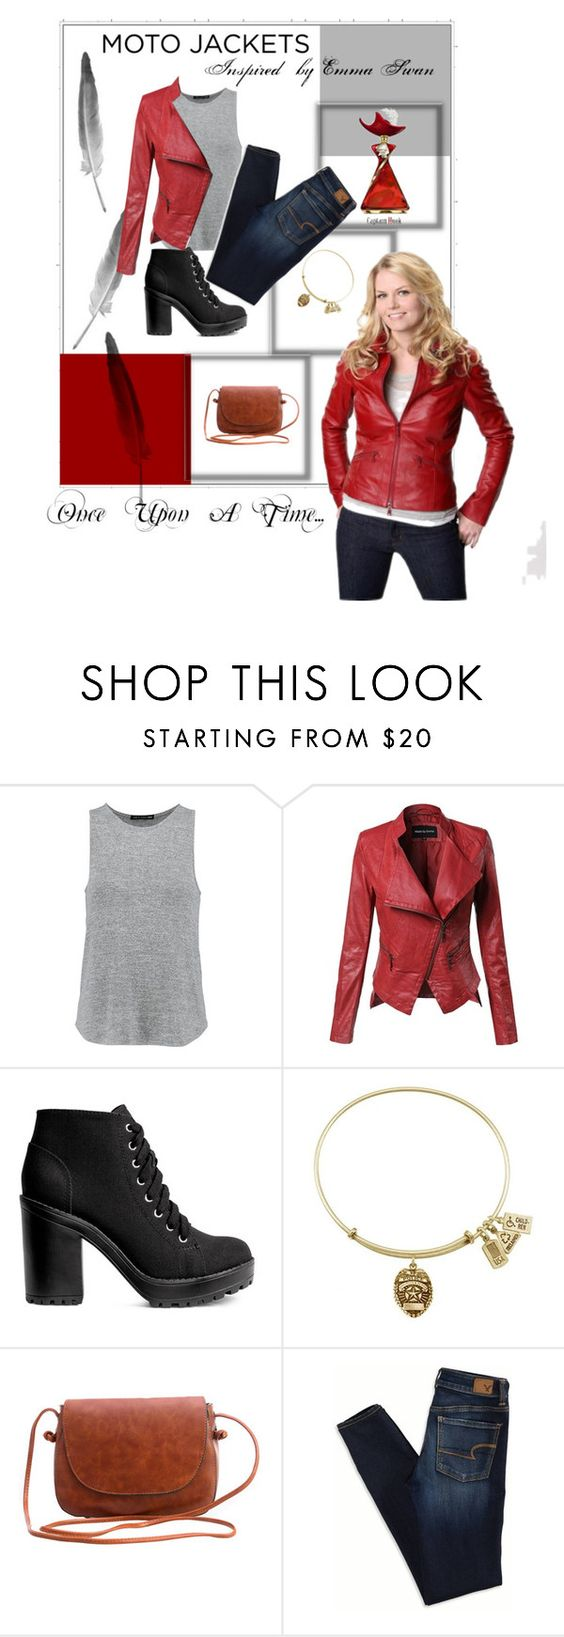 """Moto Jackets: Inspired By Emma Swan"" by madammalkin ❤ liked on Polyvore featuring rag & bone, Disney, Once Upon a Time, American Eagle Outfitters and onceuponatime"